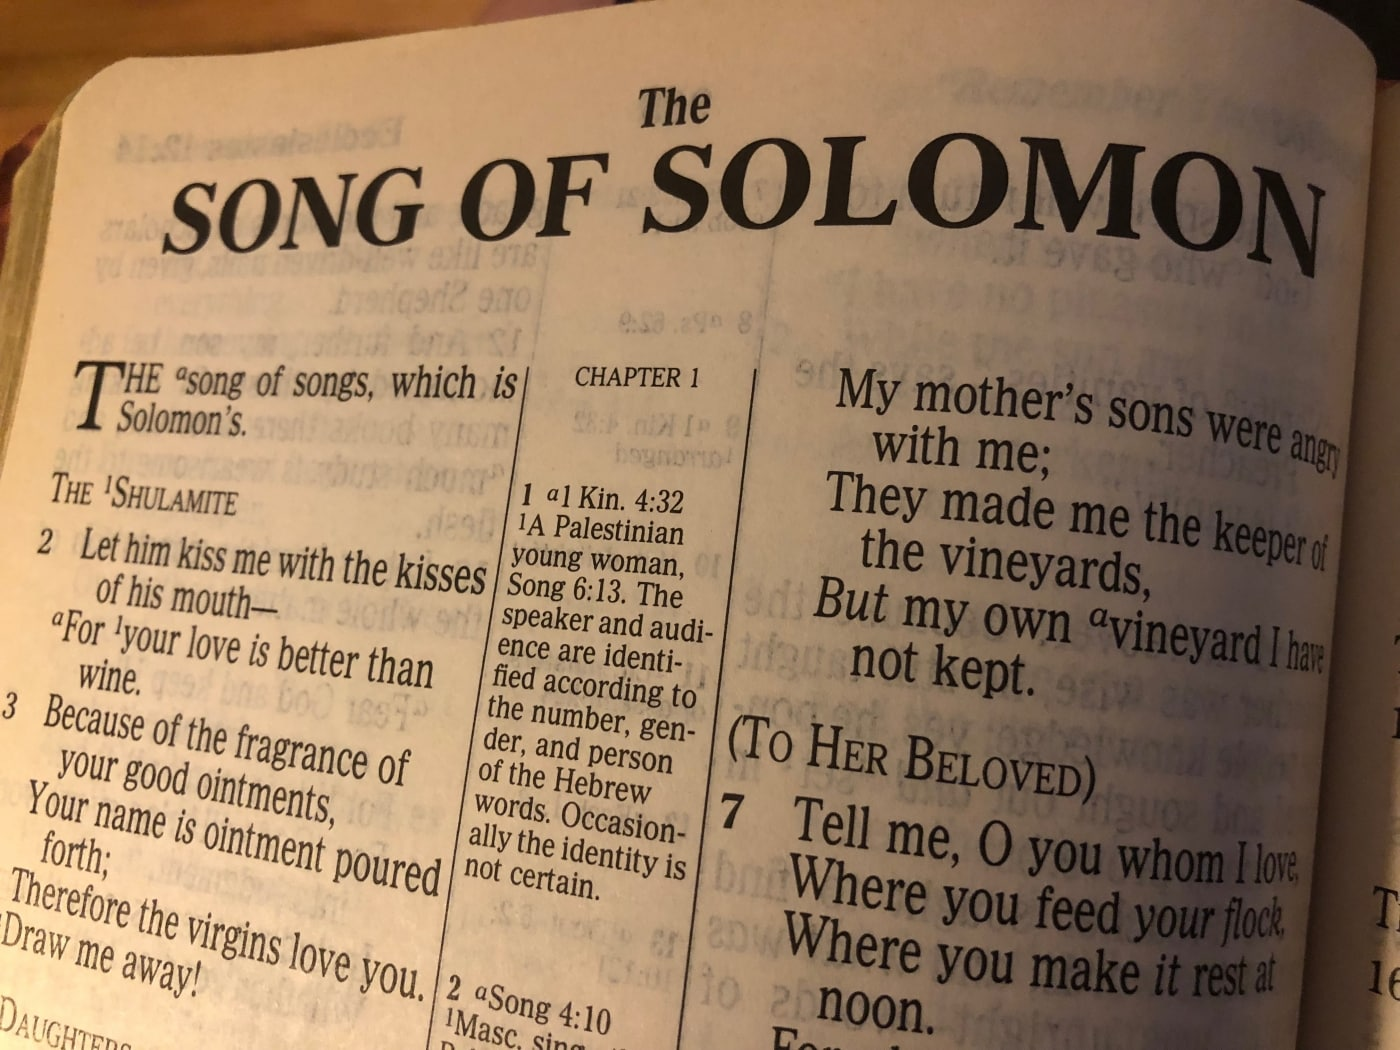 Song of Solomon #7